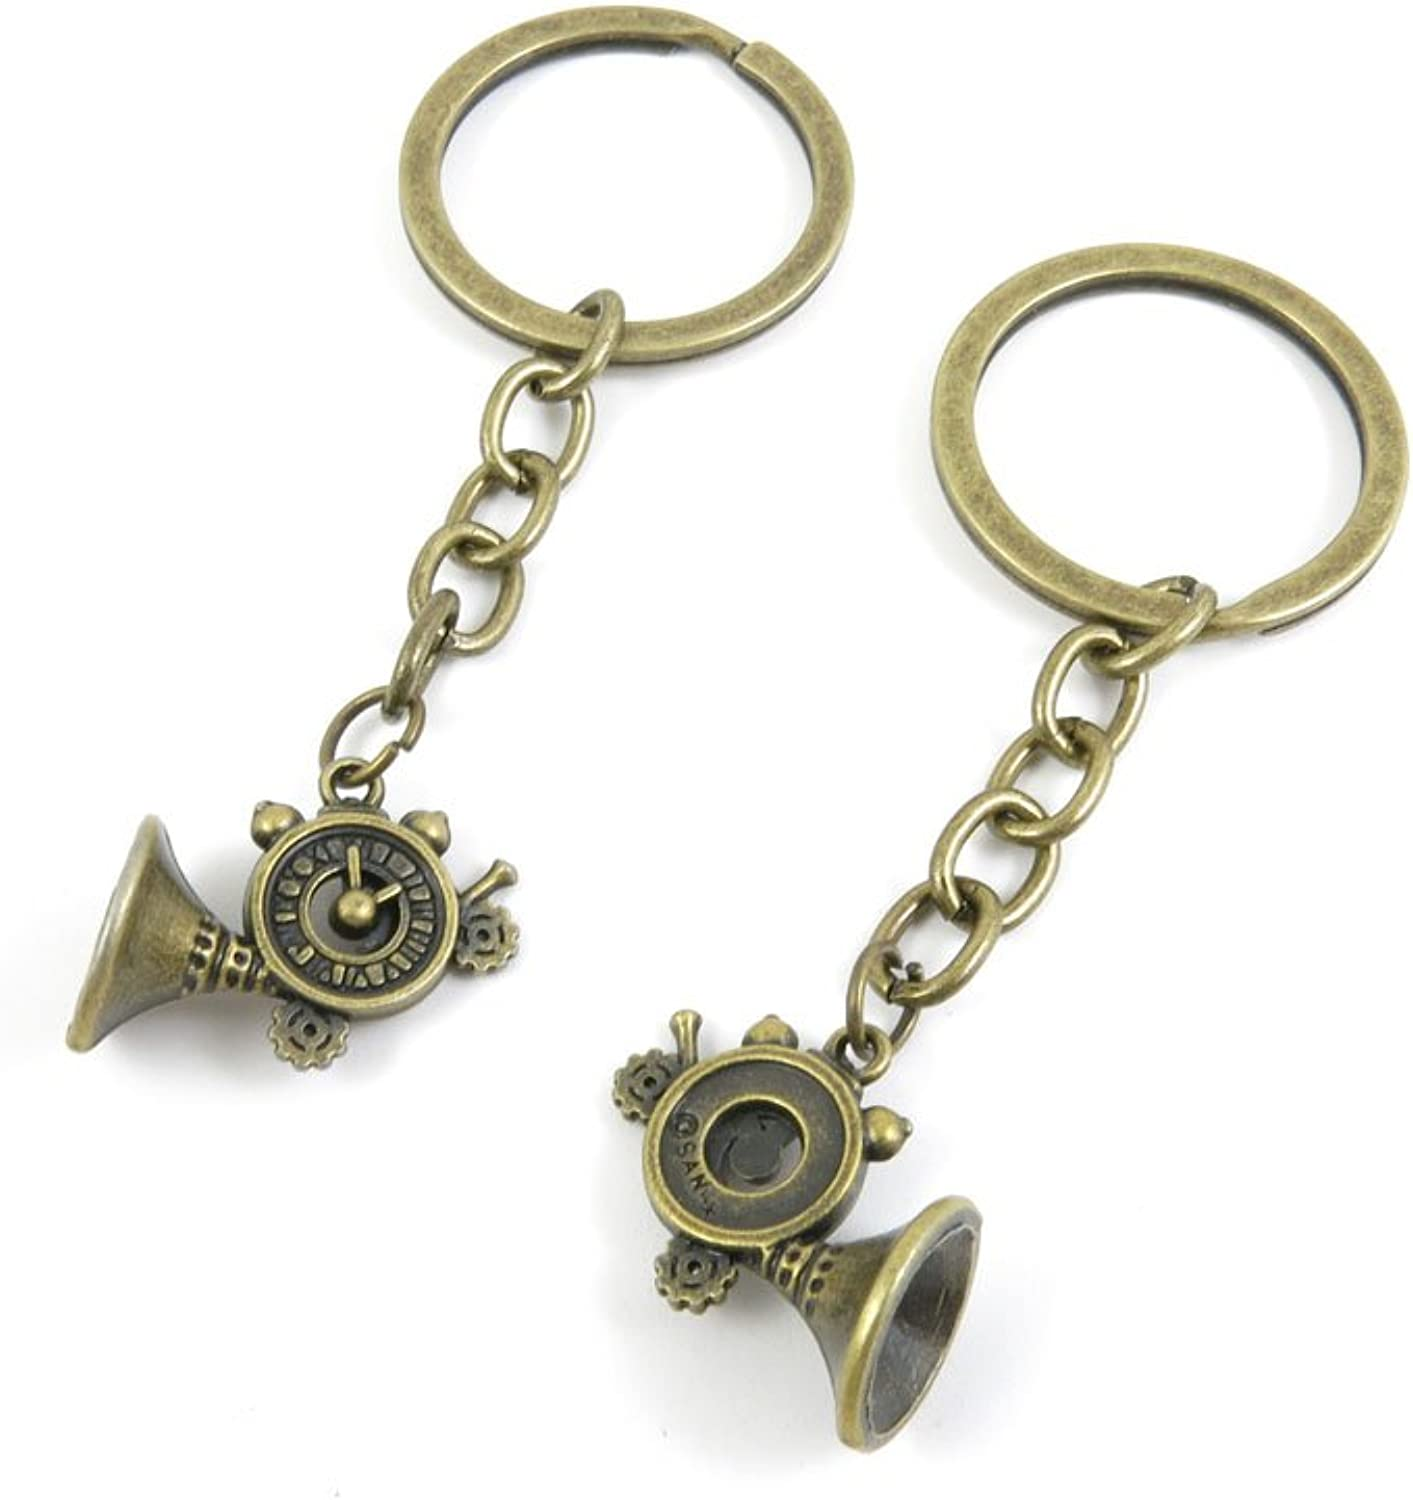 100 PCS Keyrings Keychains Key Ring Chains Tags Jewelry Findings Clasps Buckles Supplies N1CK4 Horn Clock